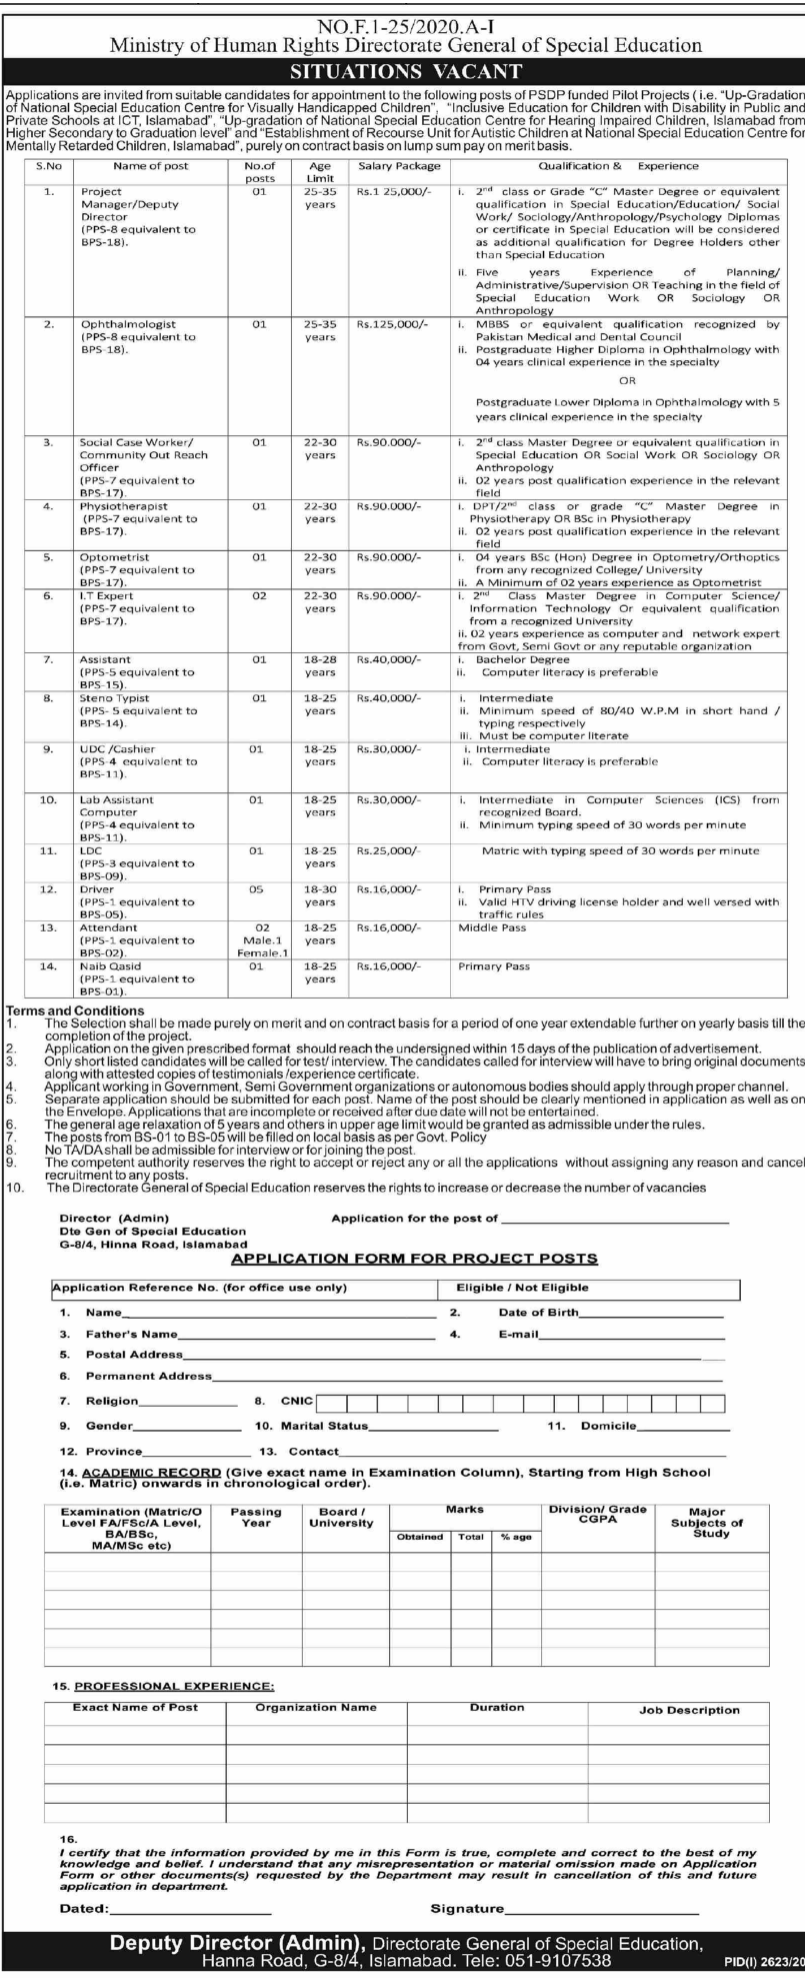 Project Manager Job in Ministry of Human Rights Directorate General of Special Education in Islamabad for Pakistan Candidates -2020